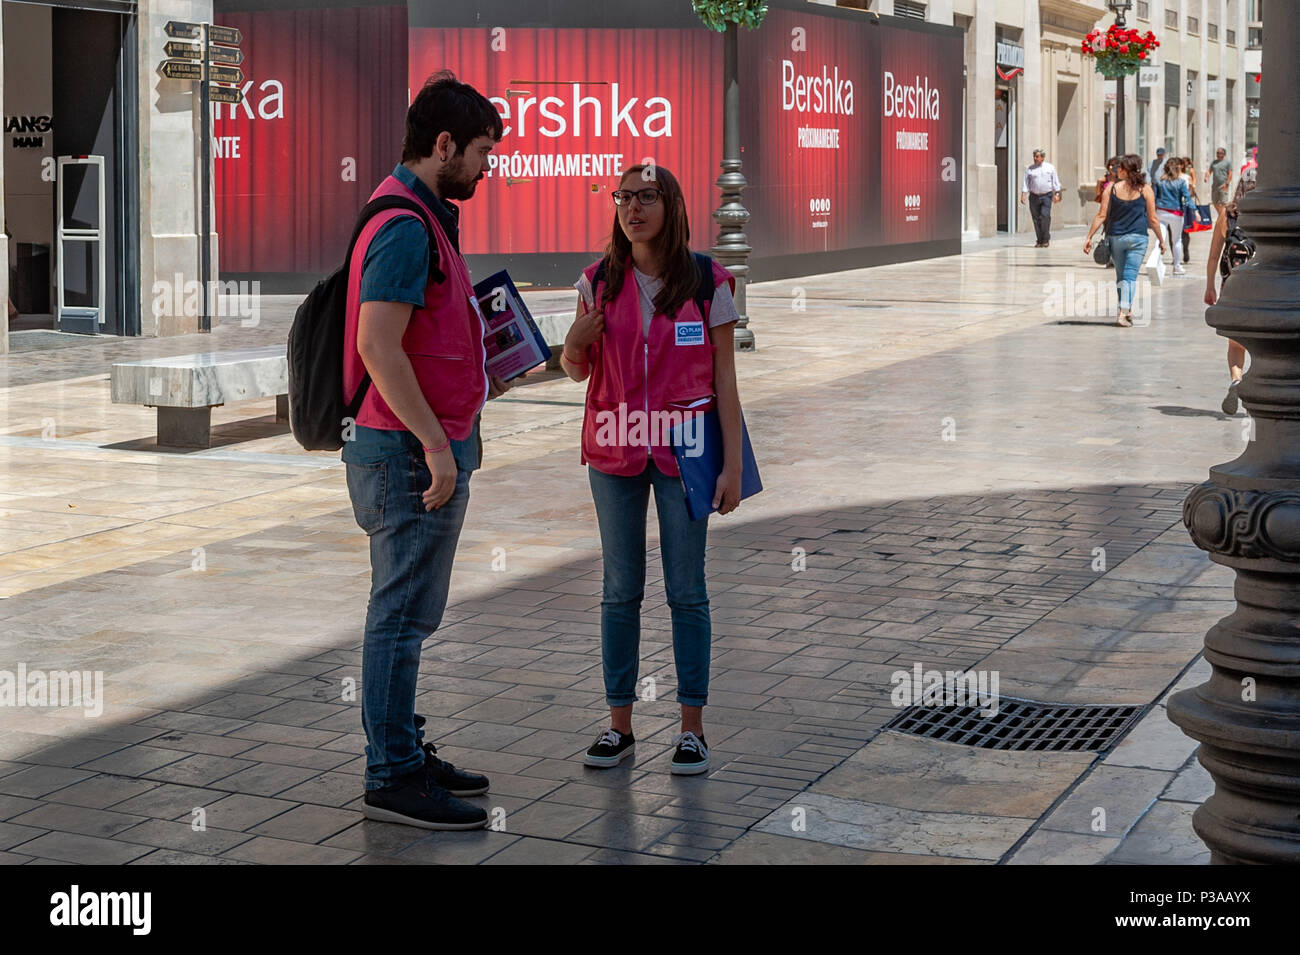 Two charity 'chuggers' talk amongst themselves on Malaga main shopping street in Malaga, Spain. - Stock Image